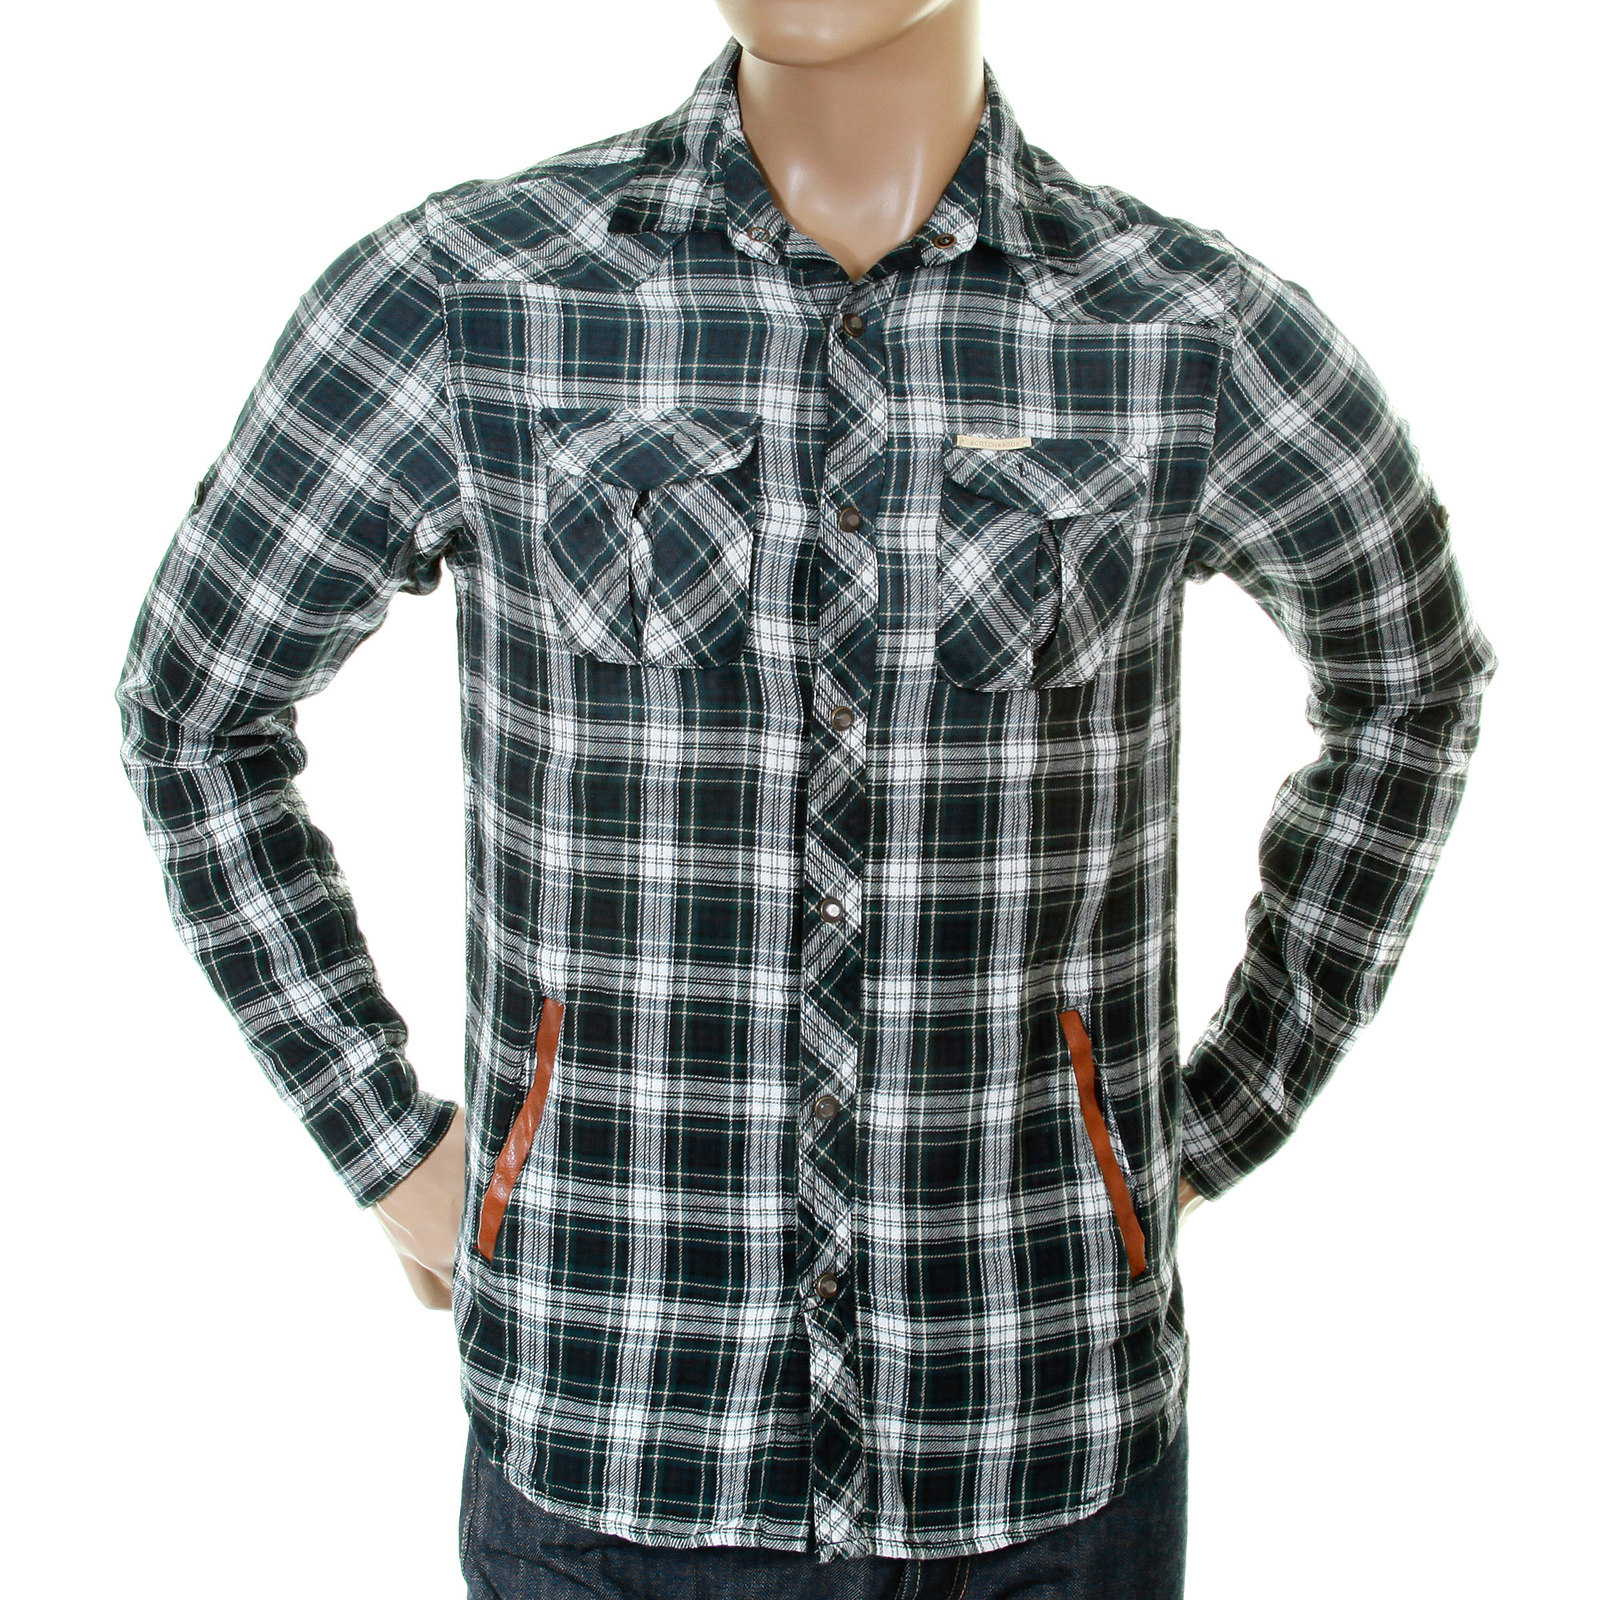 scotch soda mens green navy and white check 1204 09 20042 worker shirt scot1869 at togged clothing. Black Bedroom Furniture Sets. Home Design Ideas